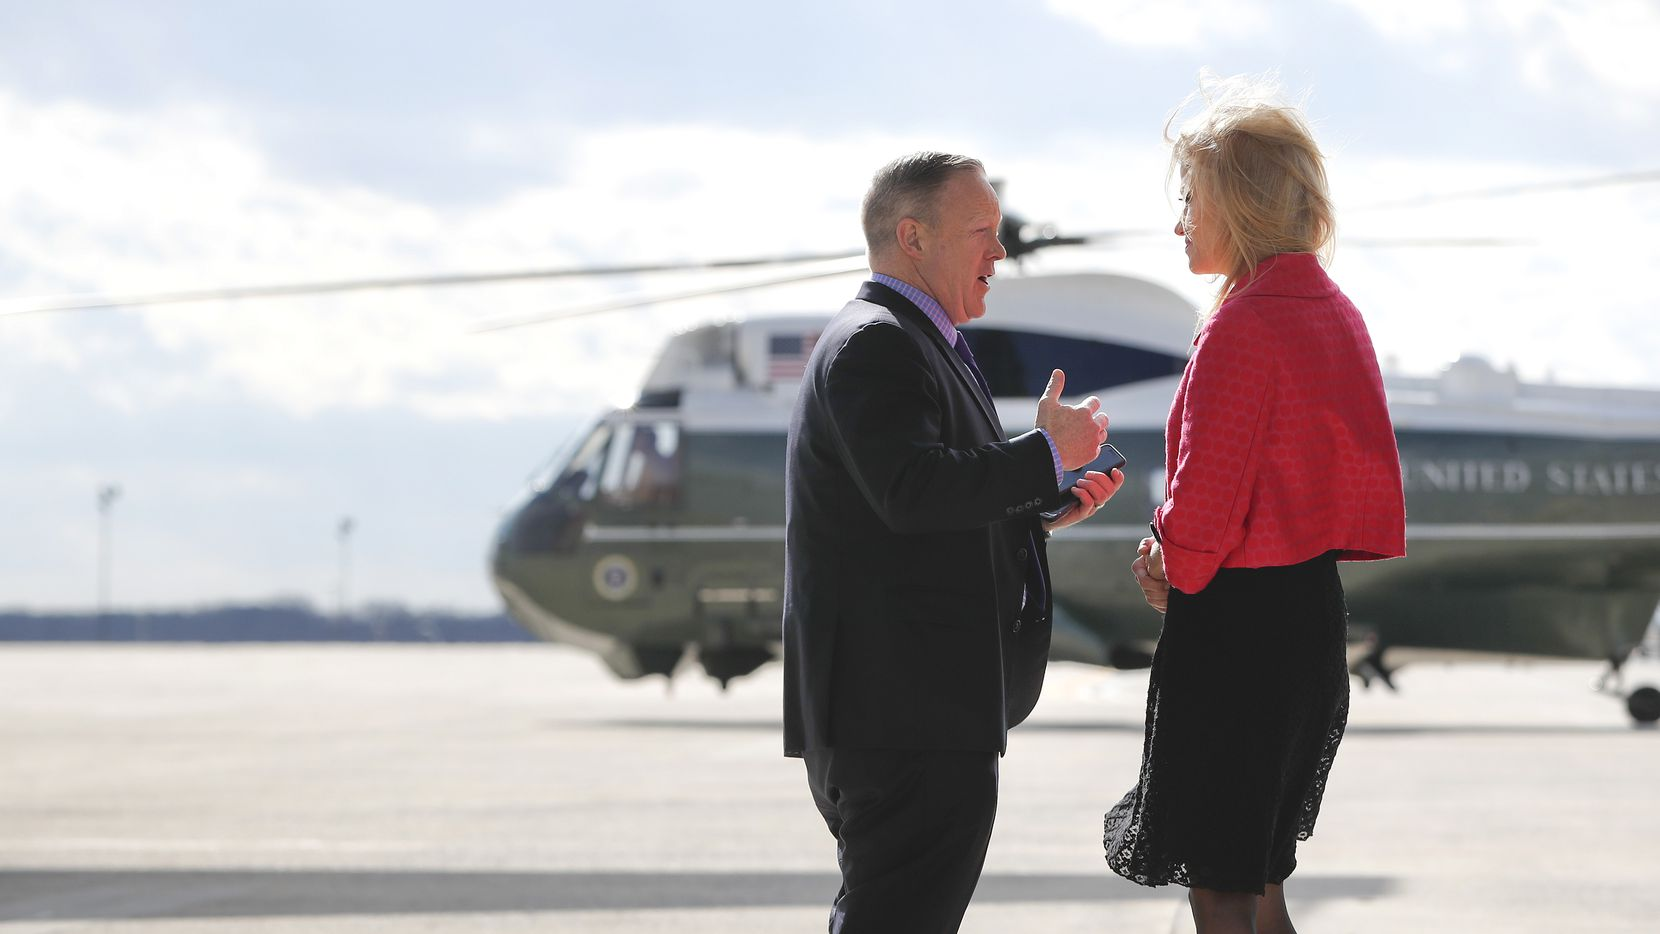 White House press secretary Sean Spicer, left, talks with Counselor to the President Kellyanne Conway, right, on the tarmac at Andrews Air Force Base. Md., at they wait for the arrival President Donald Trump, Thursday, Jan. 26, 2017.